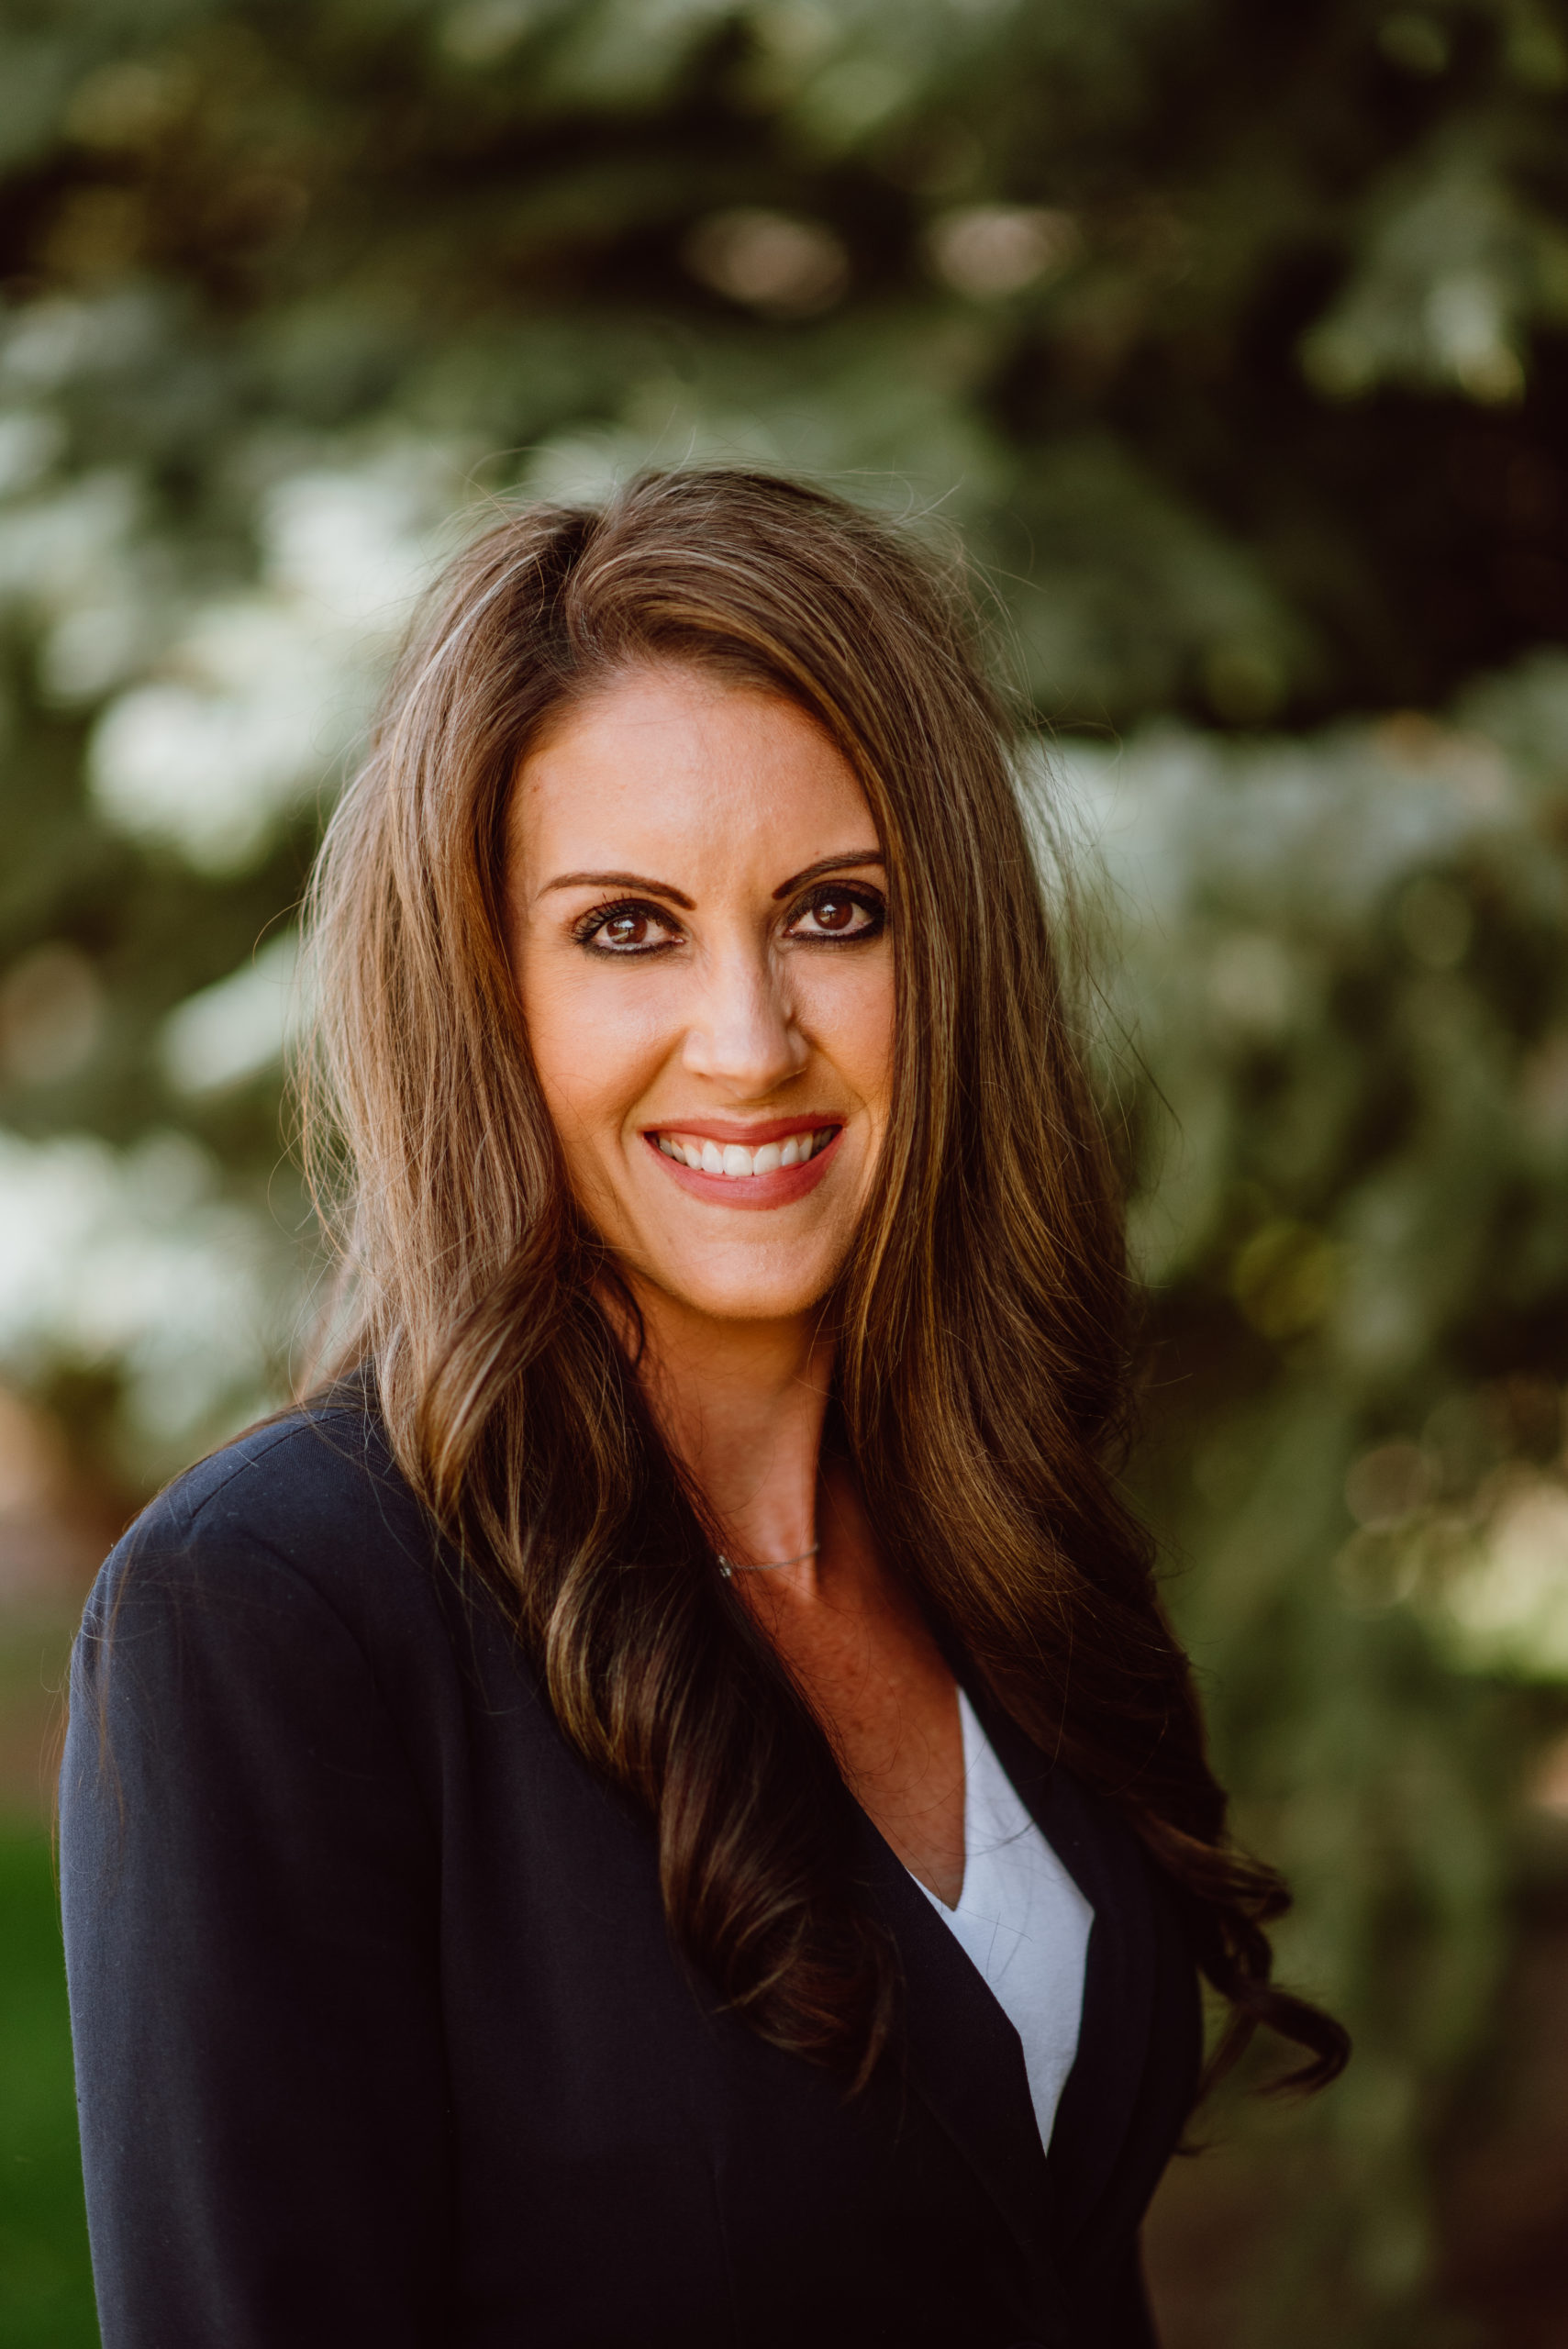 Lindsay Yeater, CPA